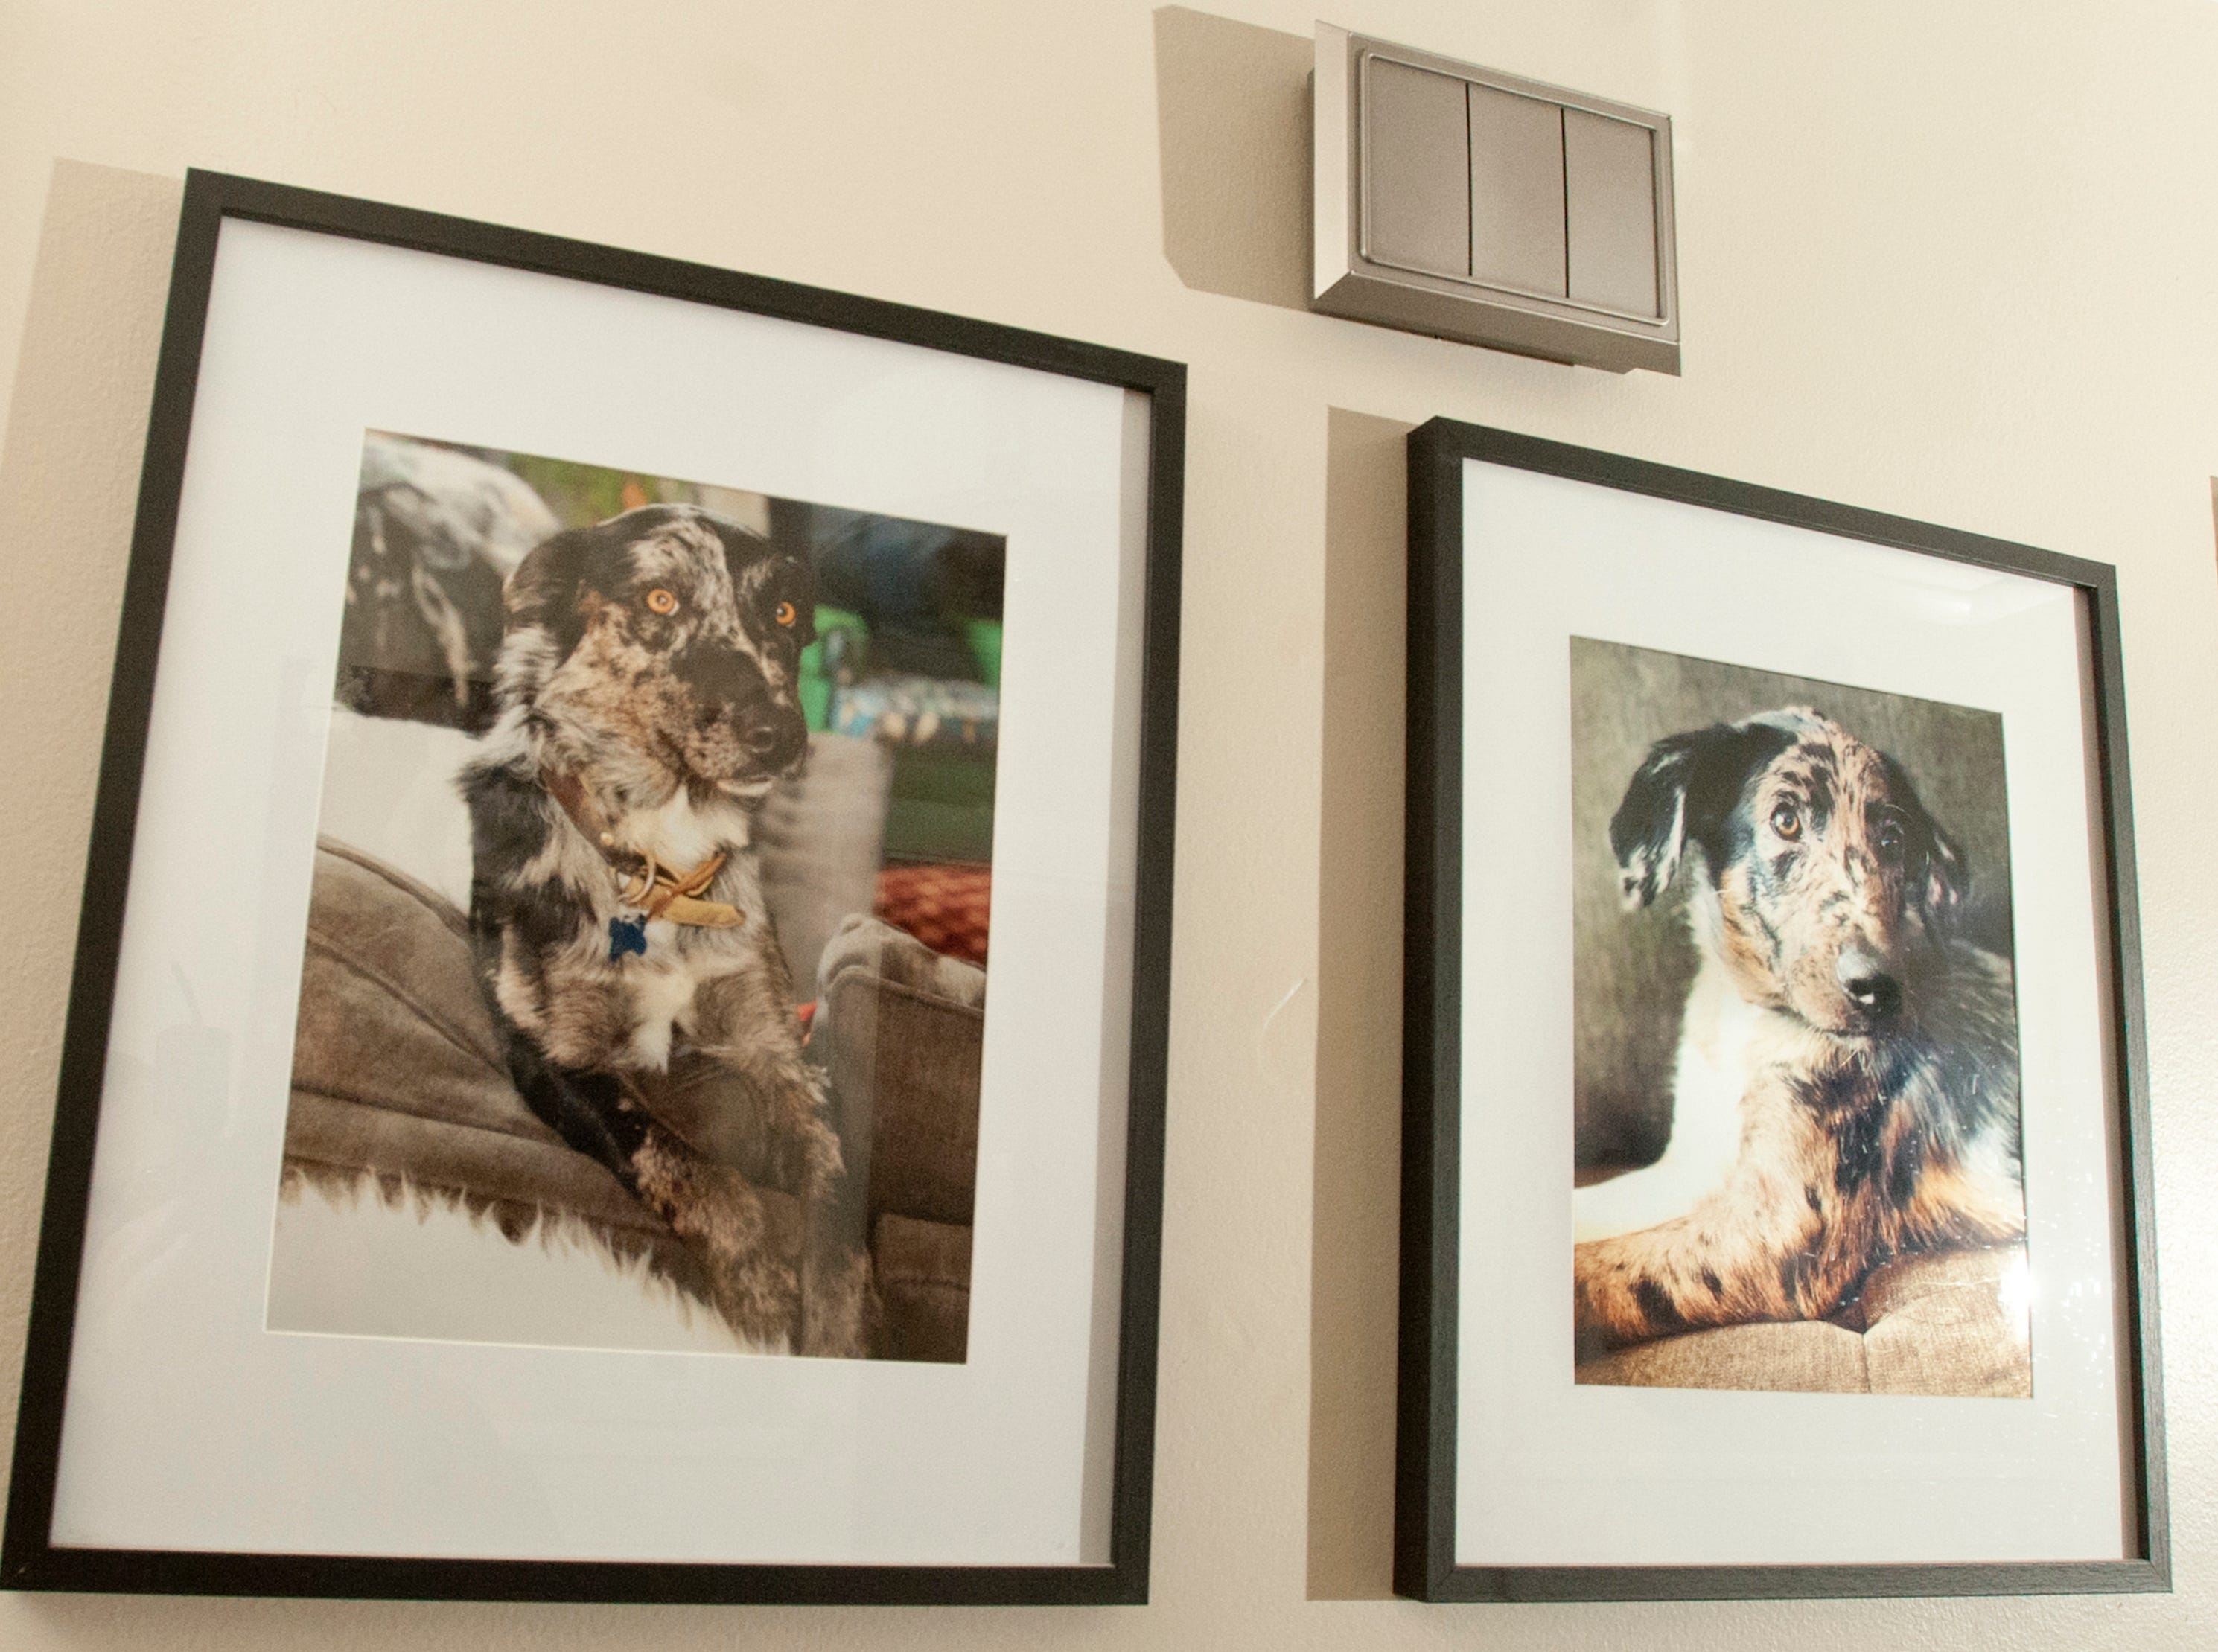 Portraits of Squires' two rescued Katahoula leopard dogs, Sprinkles and Benny, decorate the hallway.